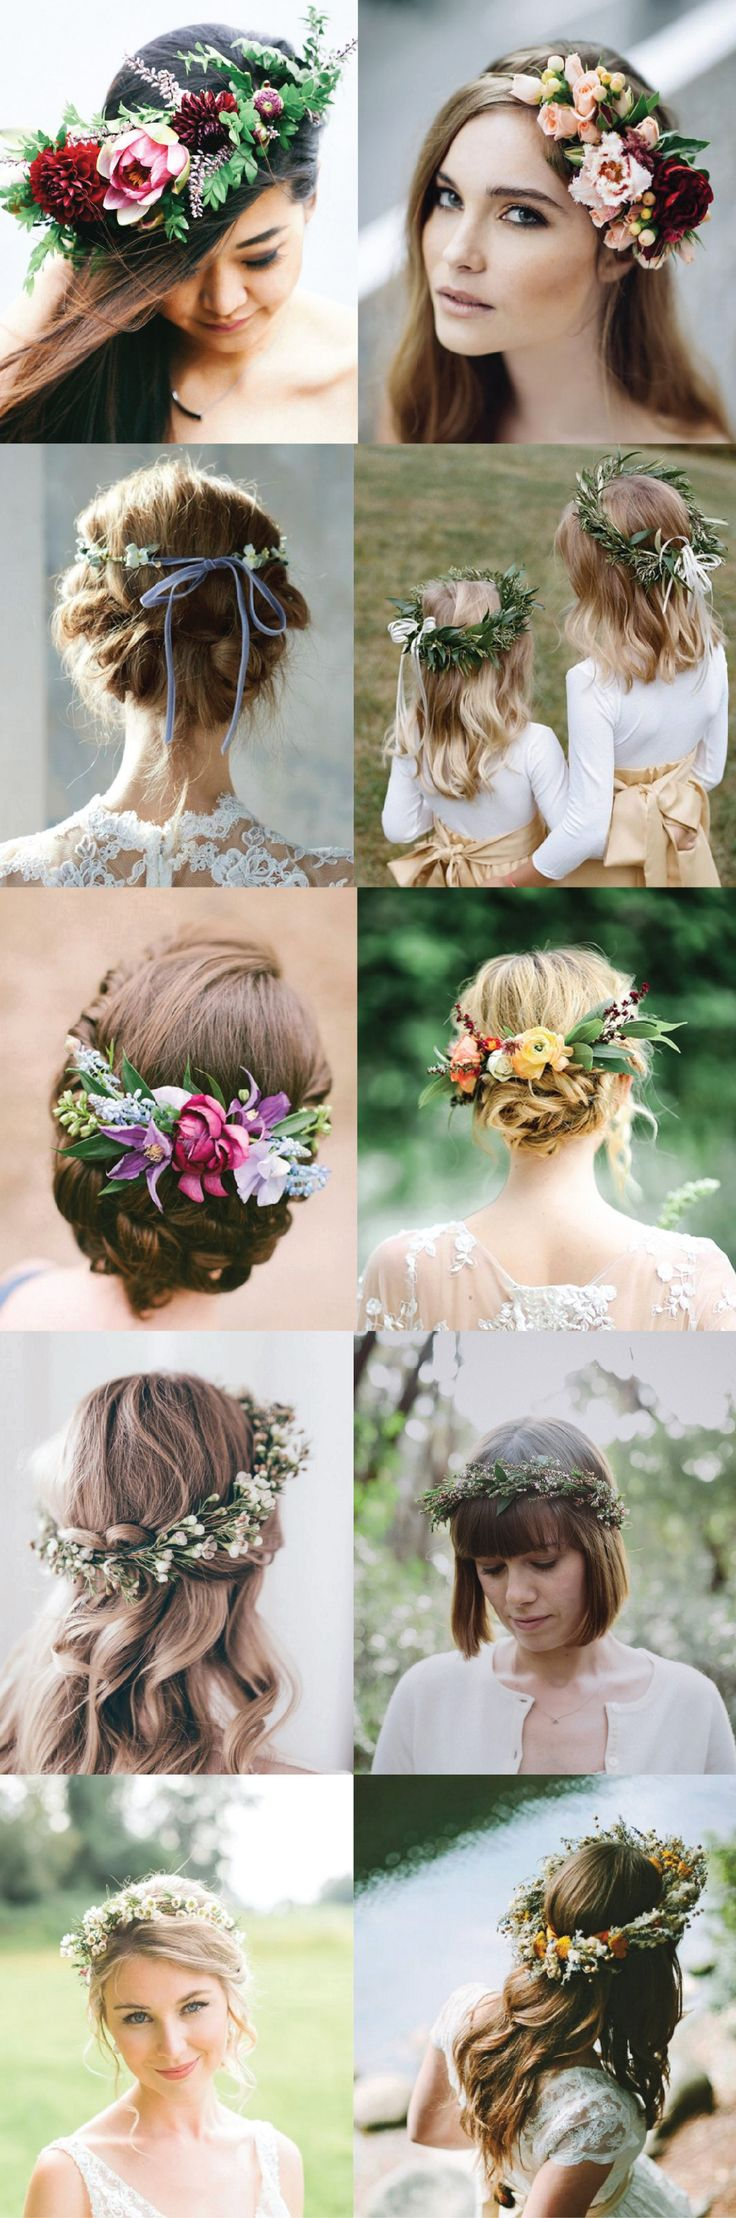 5 Ways to Style Your Wedding Hair Up! Flower crowns, ribbon back ties, and more! alles für Ihren Erfolg - www.ratsucher.de